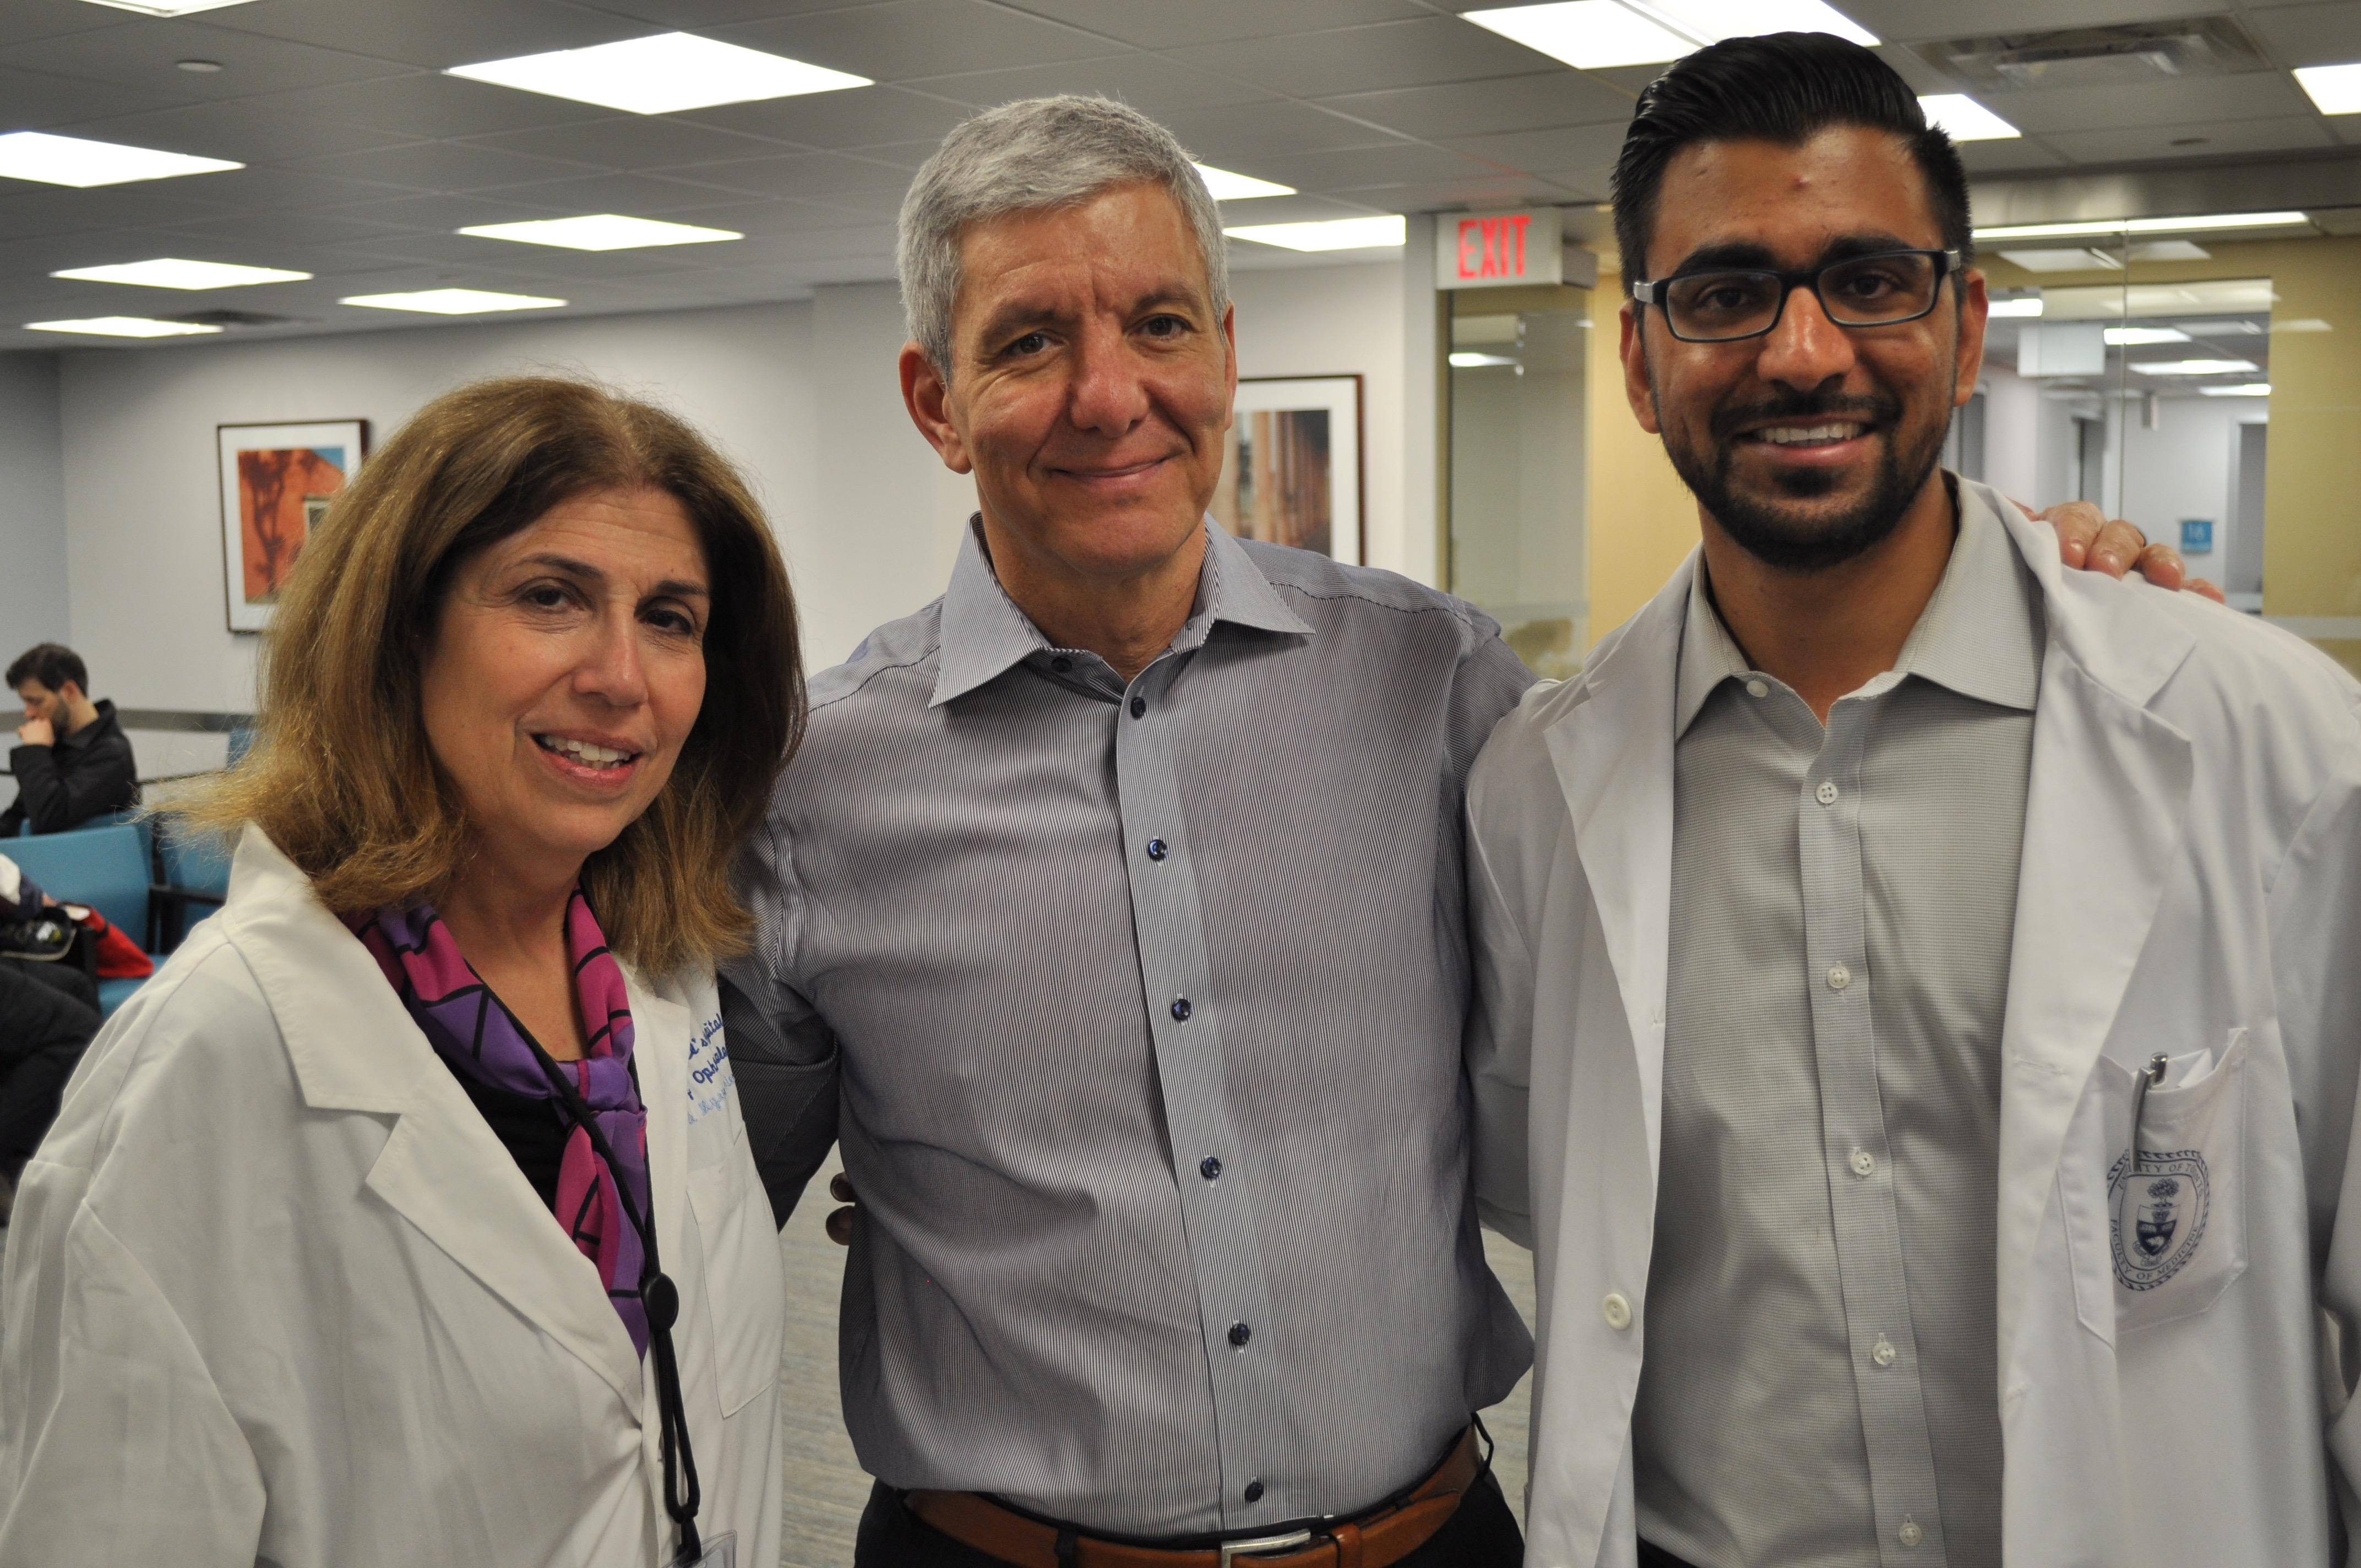 Dr. Myrna Lichter, Professor Sherif El-Defrawy (Chair of Ophthalmology and Vision Sciences) and Tarek Bin Yameen